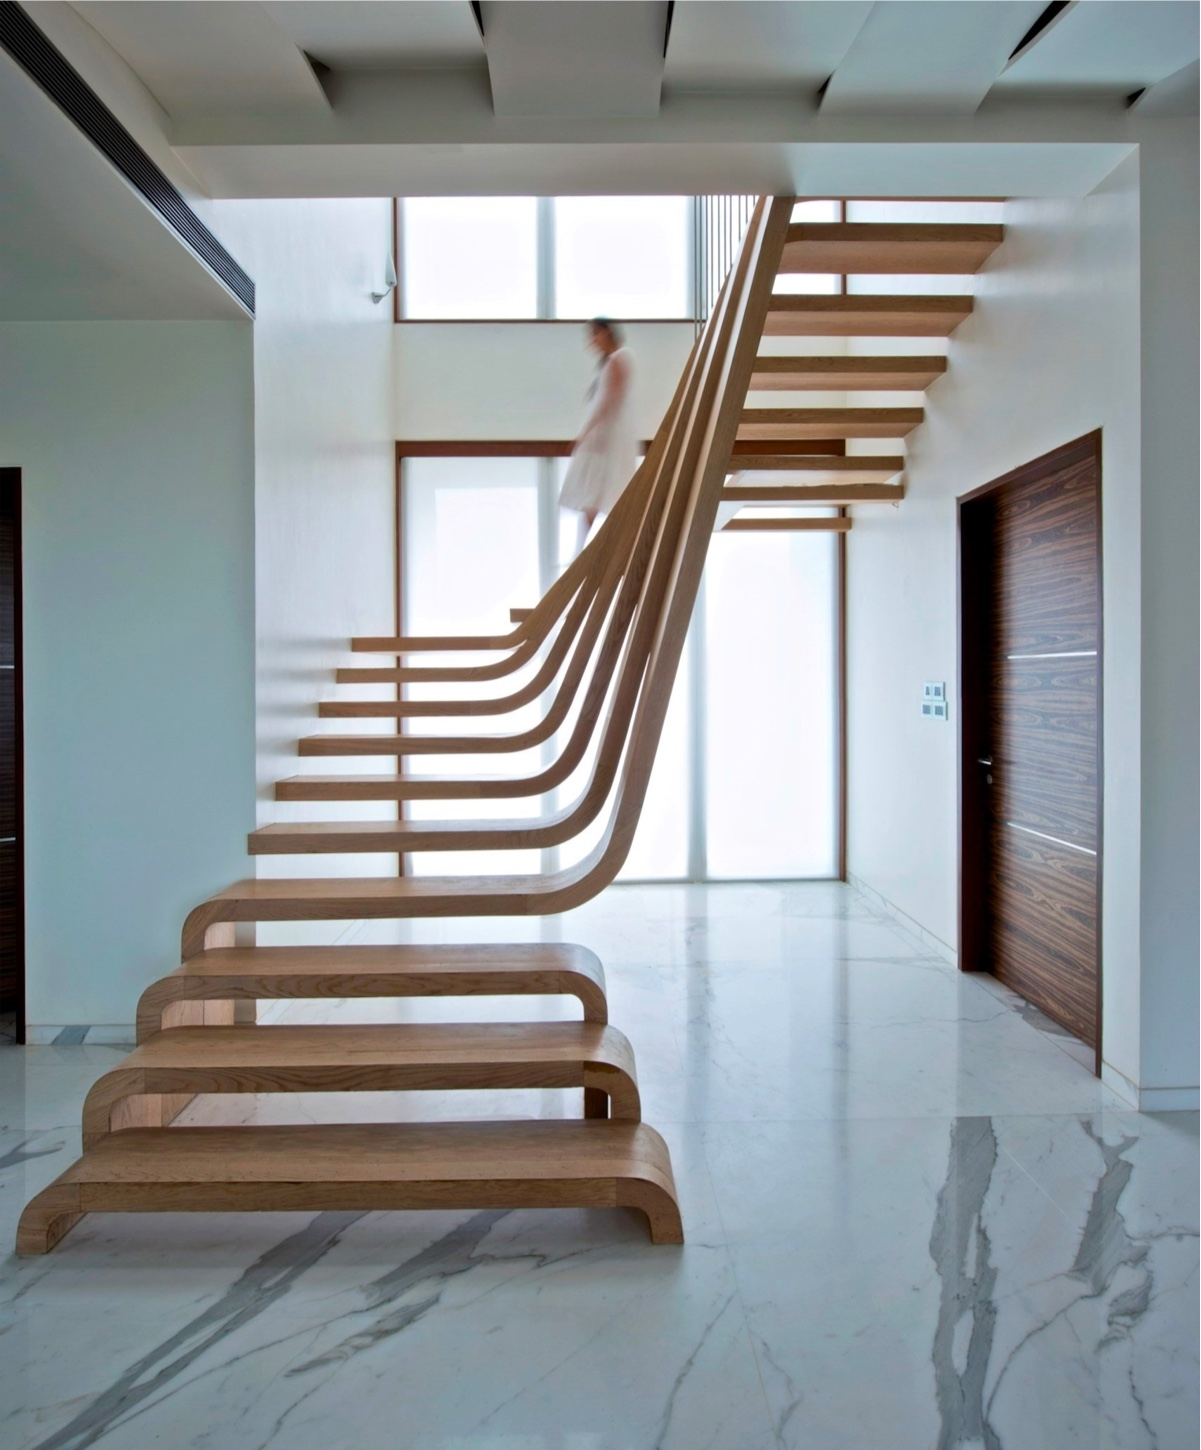 51 Stunning Staircase Design Ideas | New Home Stairs Design | Beautiful | Entrance | Iron | Stairway | Wall